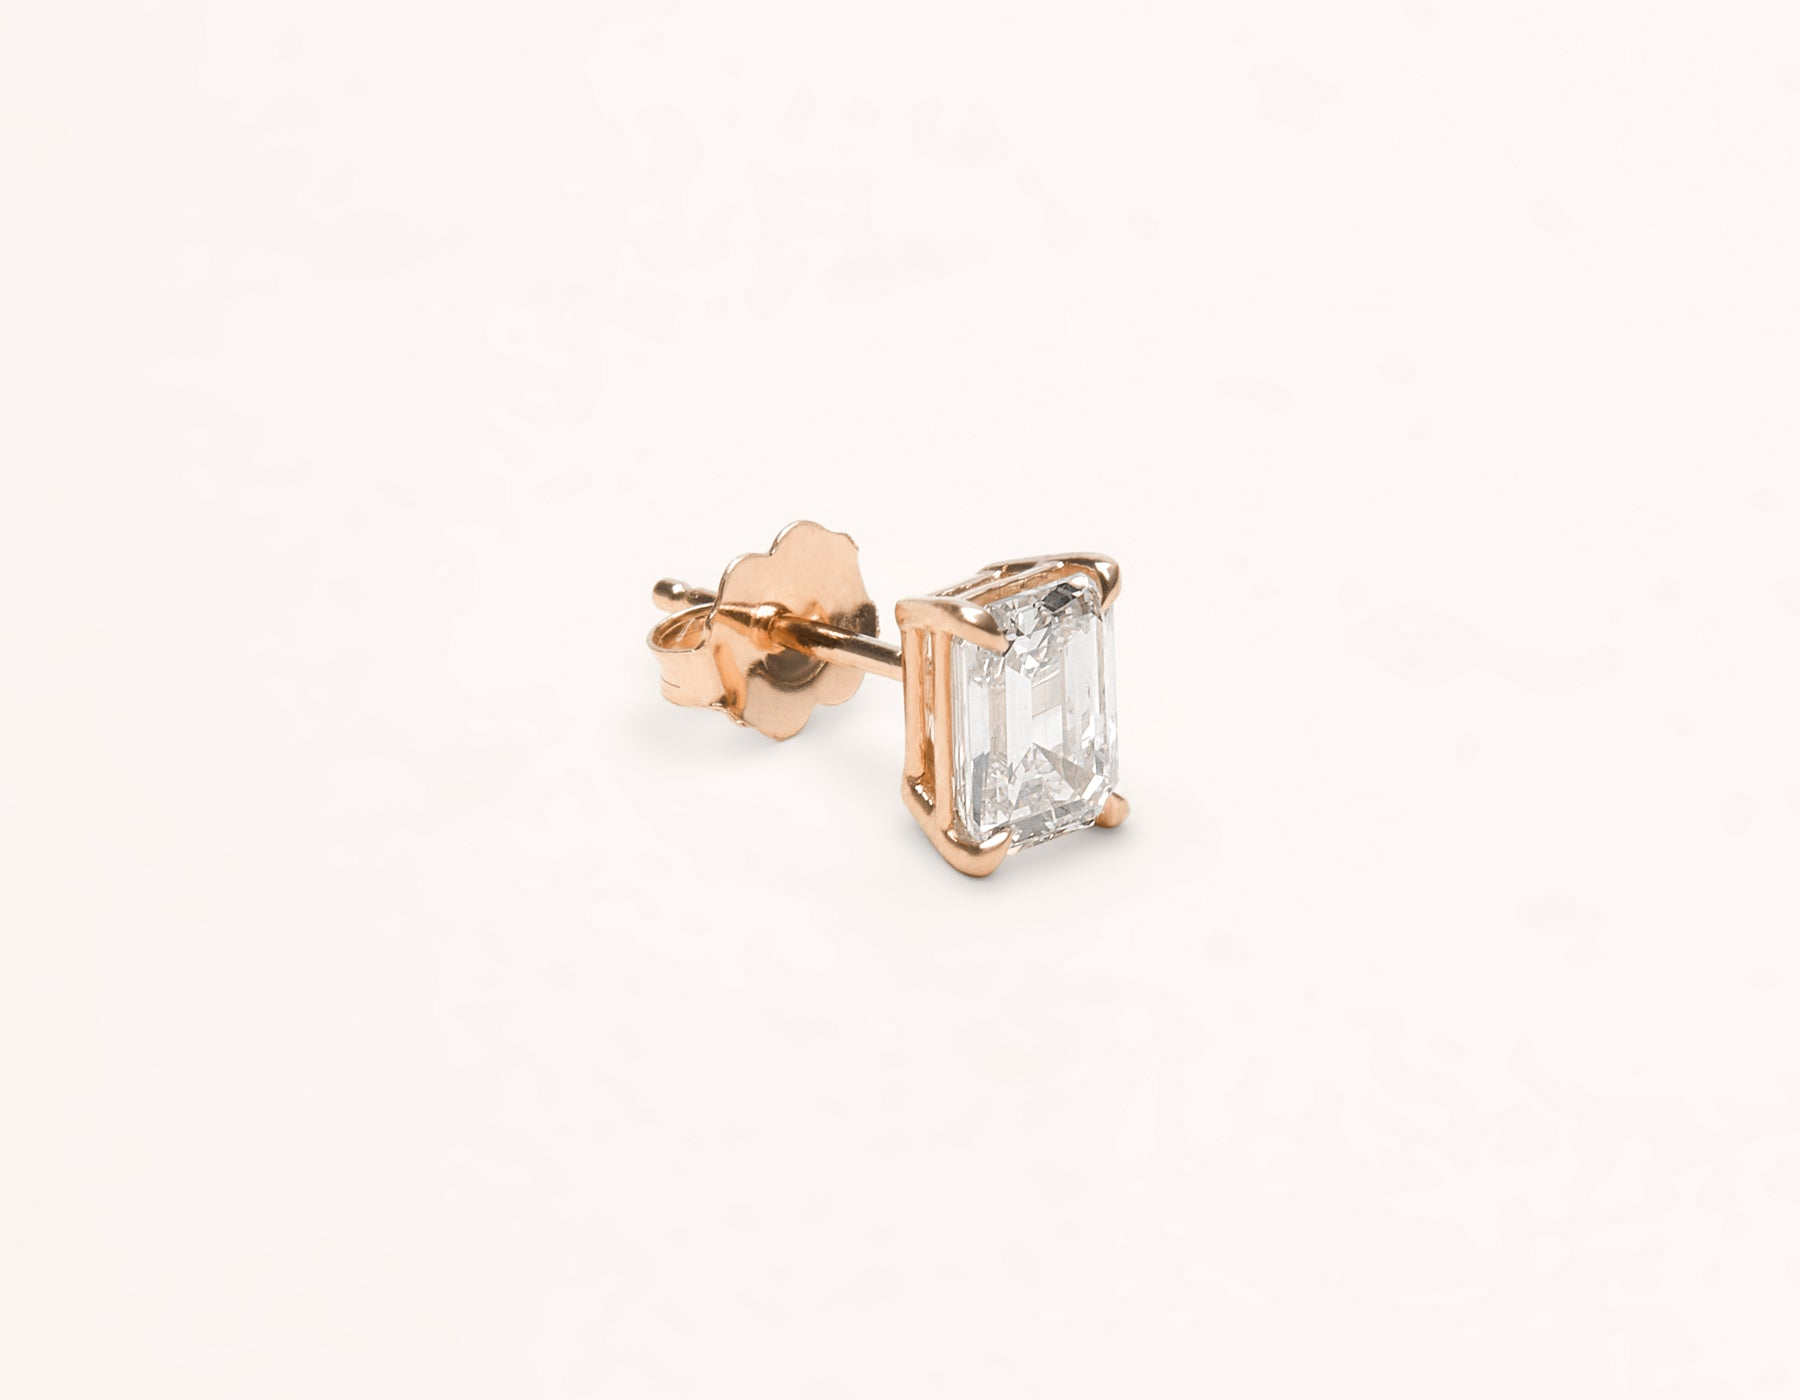 Vrai & Oro 1.0 carat Emerald Diamond stud earring 18k solid gold simple modern, 18K Rose Gold